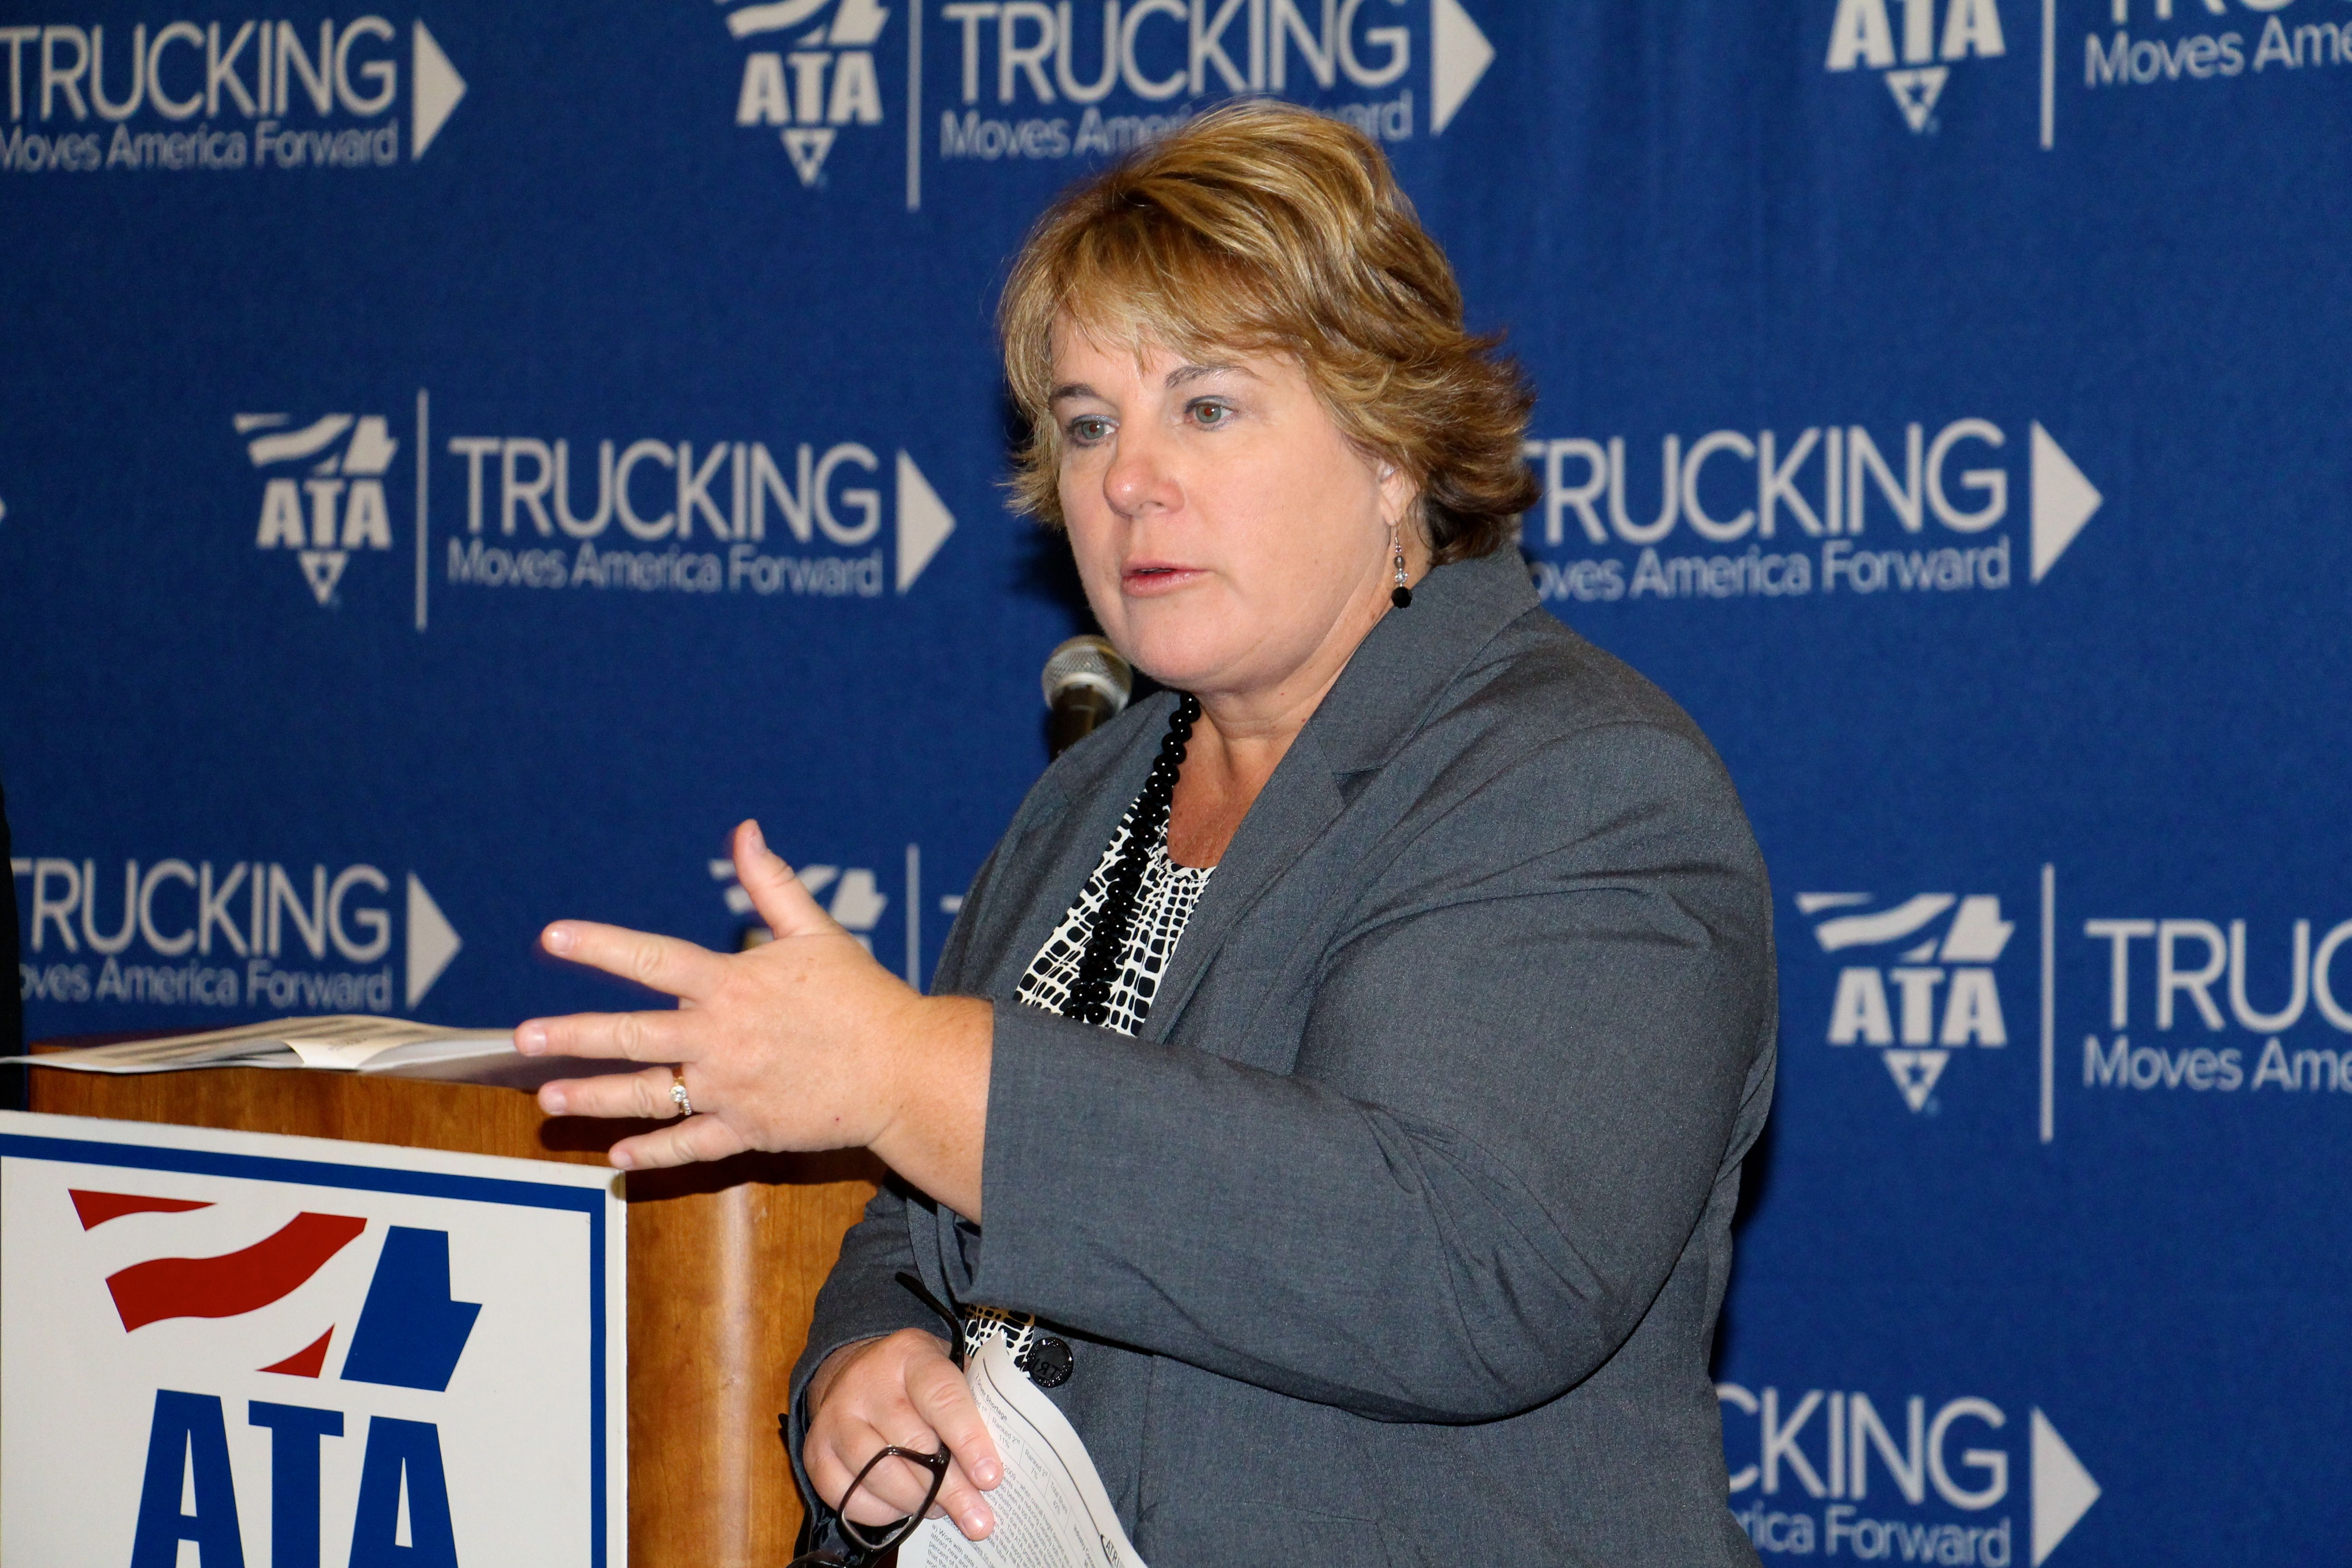 Survey Shows Hours of Service Top Trucking Concern